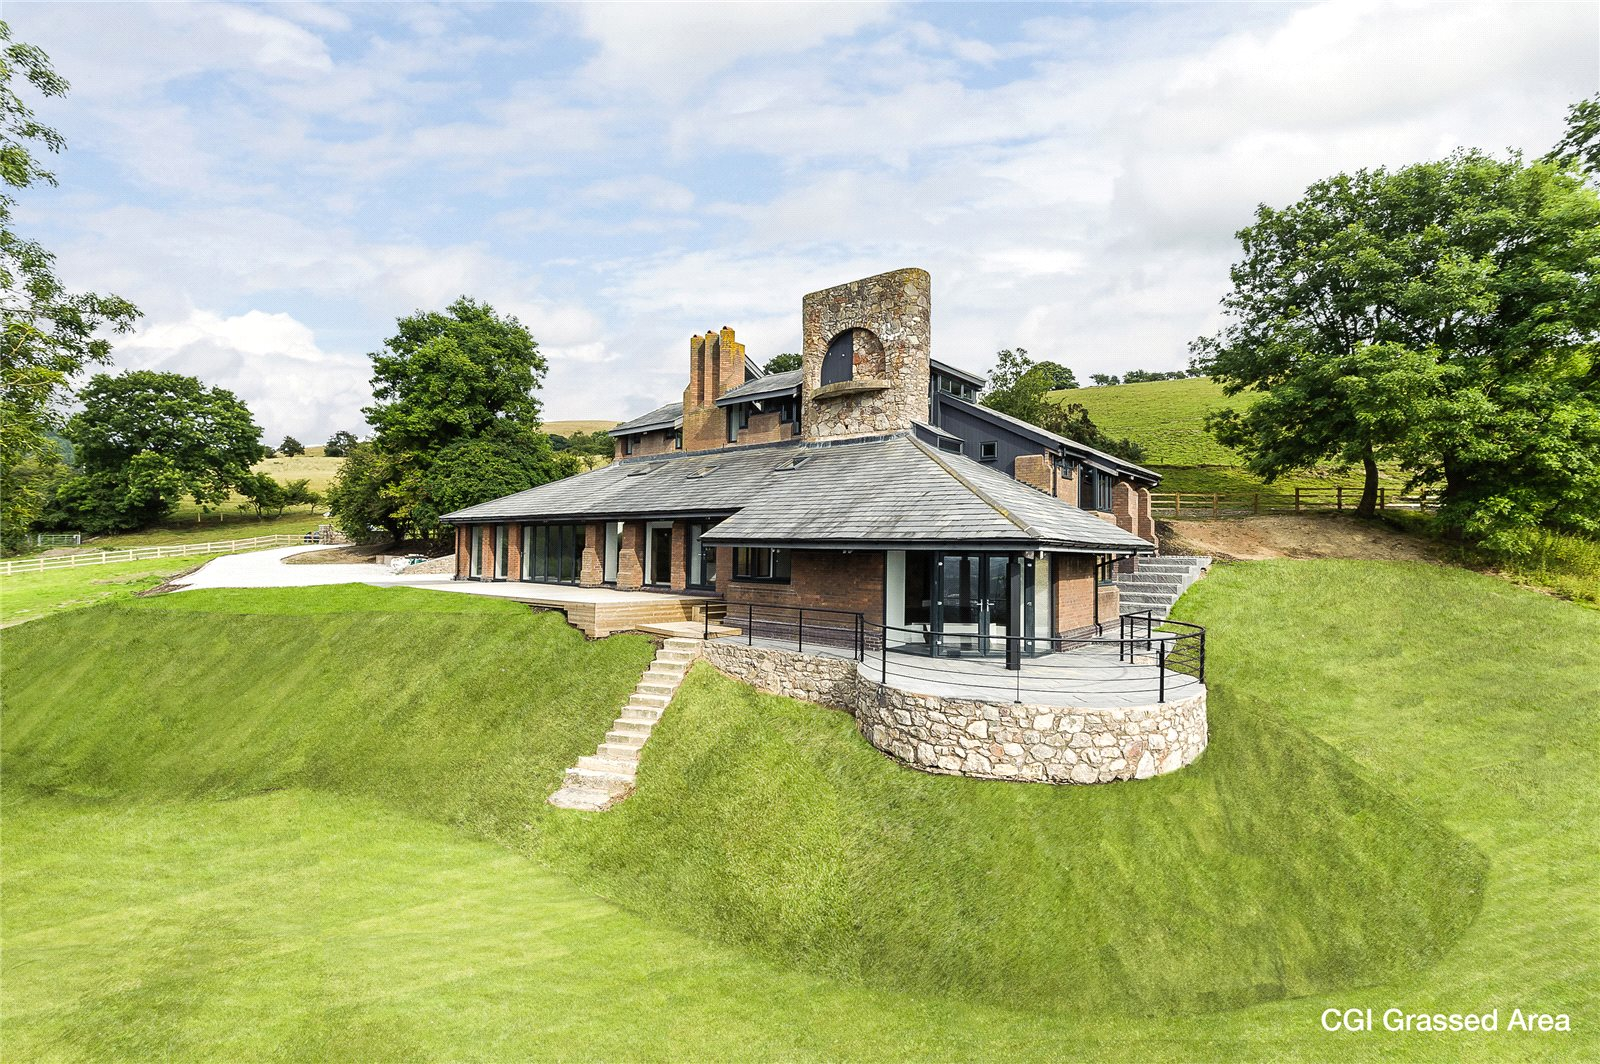 Additional photo for property listing at Llangwyfan, Denbigh, Denbighshire, LL16 Denbighshire, Wales